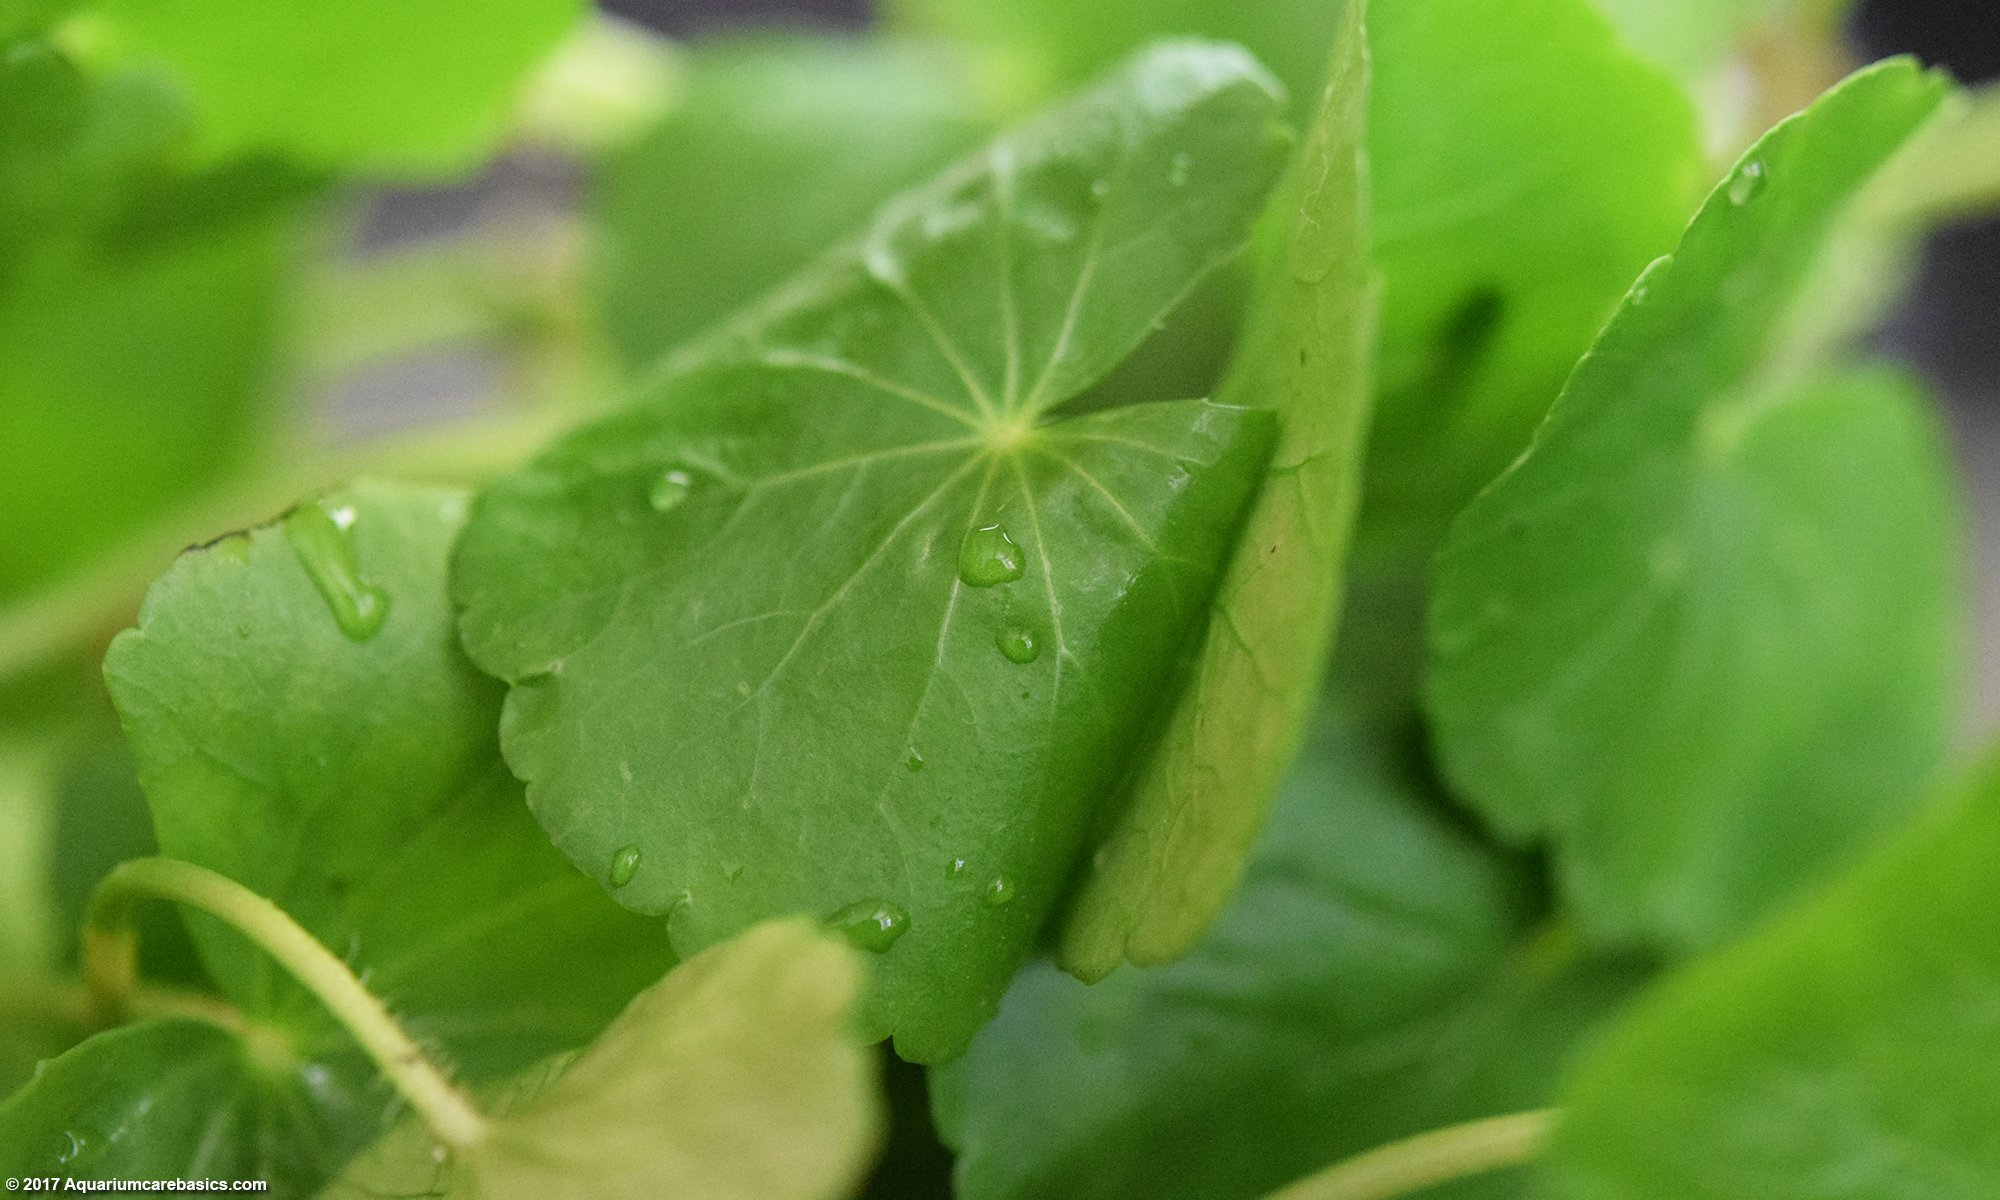 Brazilian Pennywort Leaves, Upclose